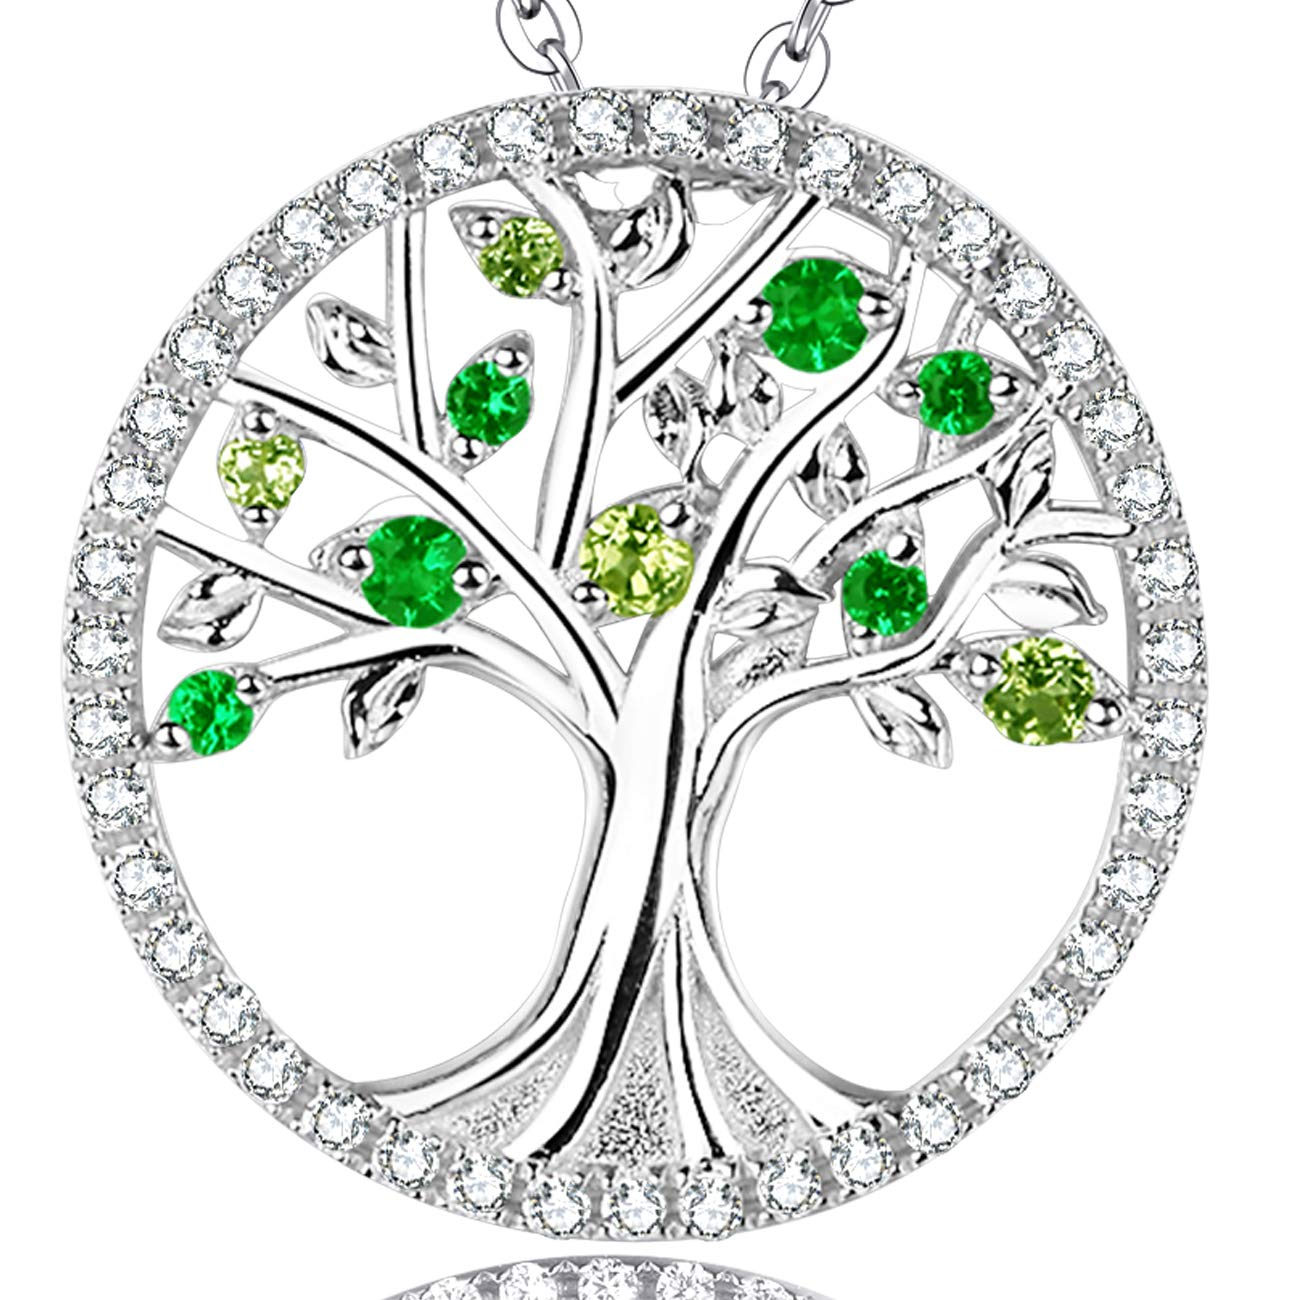 Birthday Gift her August Birthstone Necklace Green Peridot Emerald The Tree Life Love Pendant Jewelry Sterling Silver - 20'' Chain